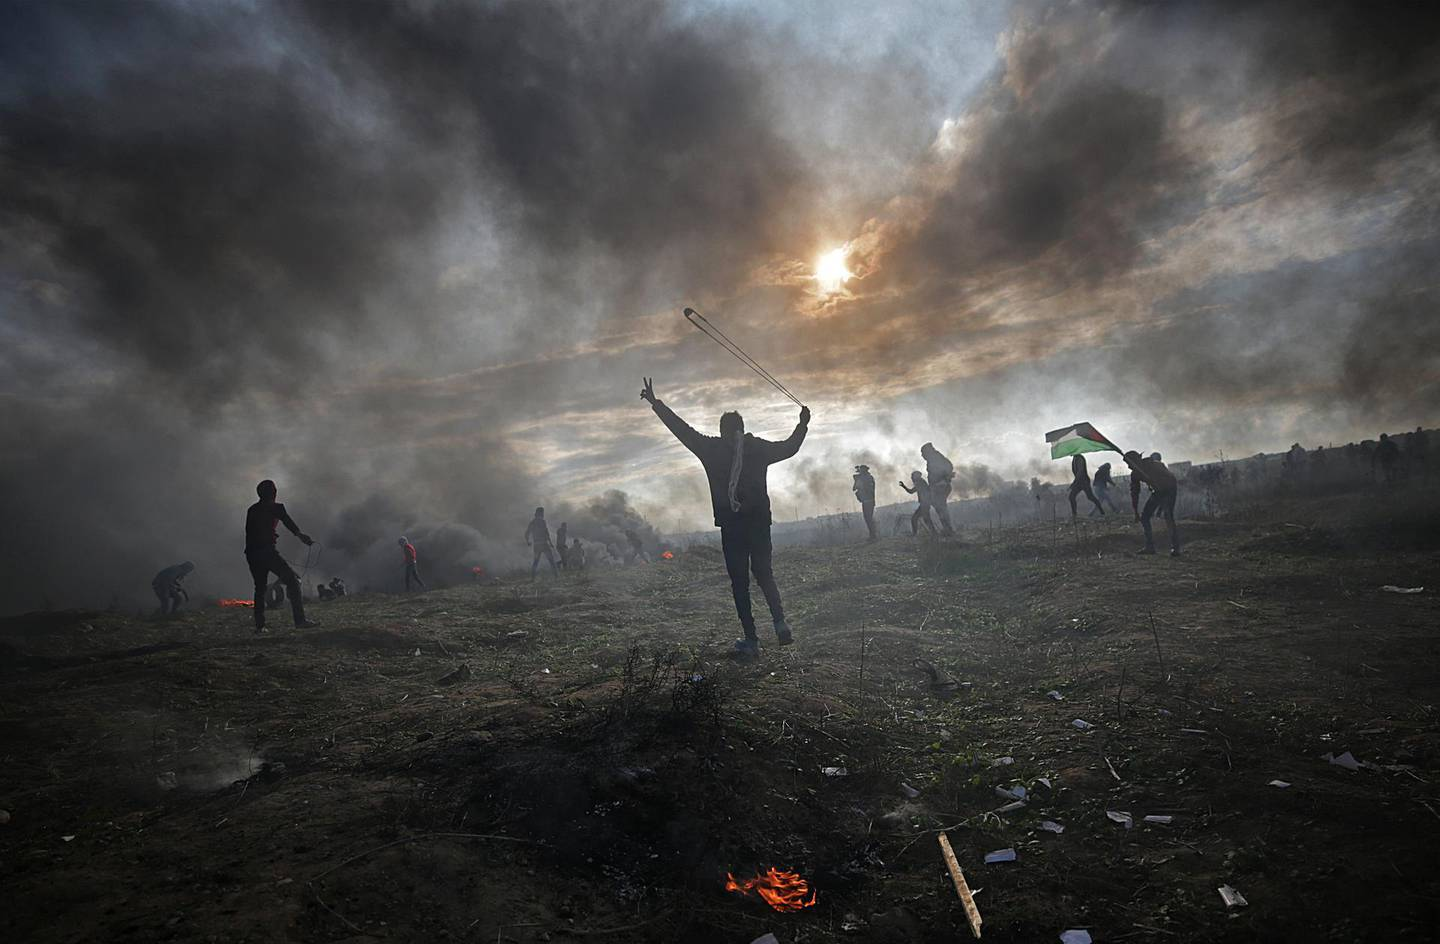 epa06392203 Palestinian protesters throw stones at Israeli troops during clashes near the border with Israel, against US President decision to recognize Jerusalem as the capital of Israel, in the east of Gaza City, 15 December 2017. Two Palestinians were killed during the clashes in the east of Gaza Strip. US president Donald J. Trump on 06 December announced he is recognizing Jerusalem as the Israel capital and will relocate the US embassy from Tel Aviv to Jerusalem.  EPA/MOHAMMED SABER